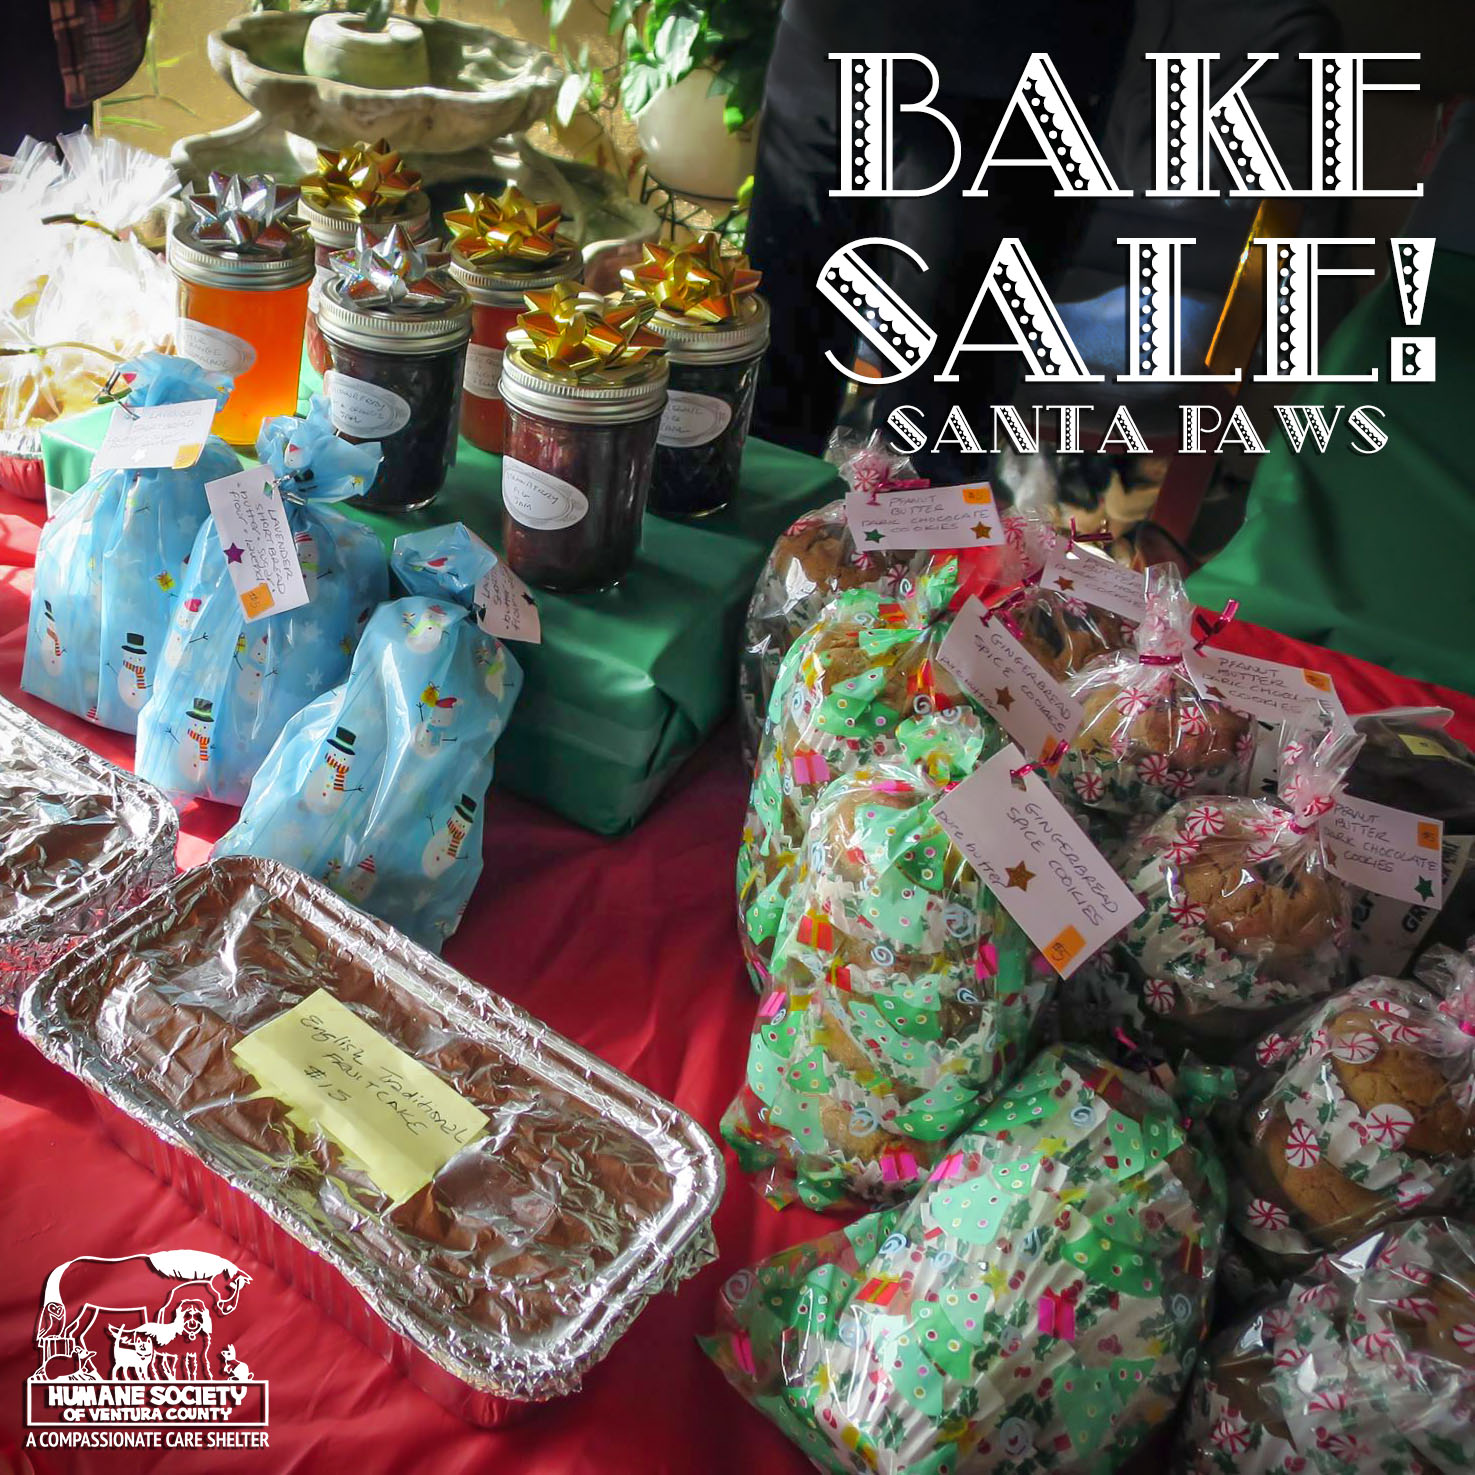 holiday bake sale humane society of ventura county